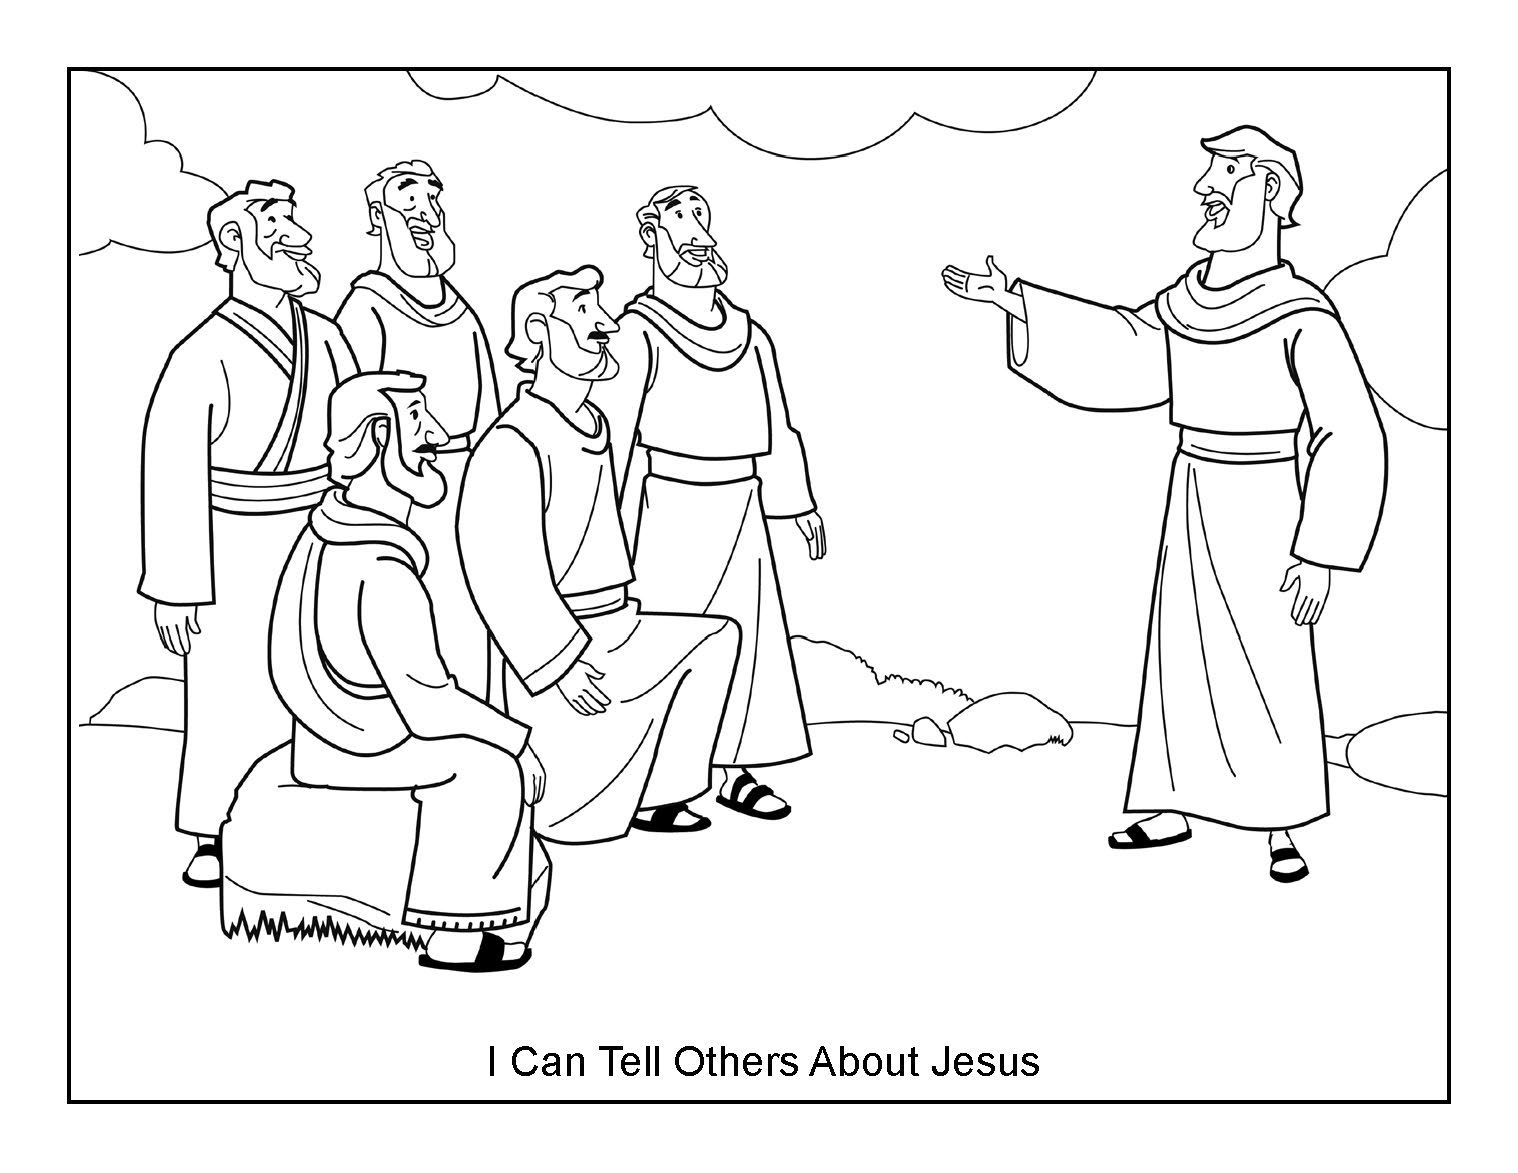 Free Coloring Pages Download I Can Tell Others About Jesus Page Dibujos Pinterest Of